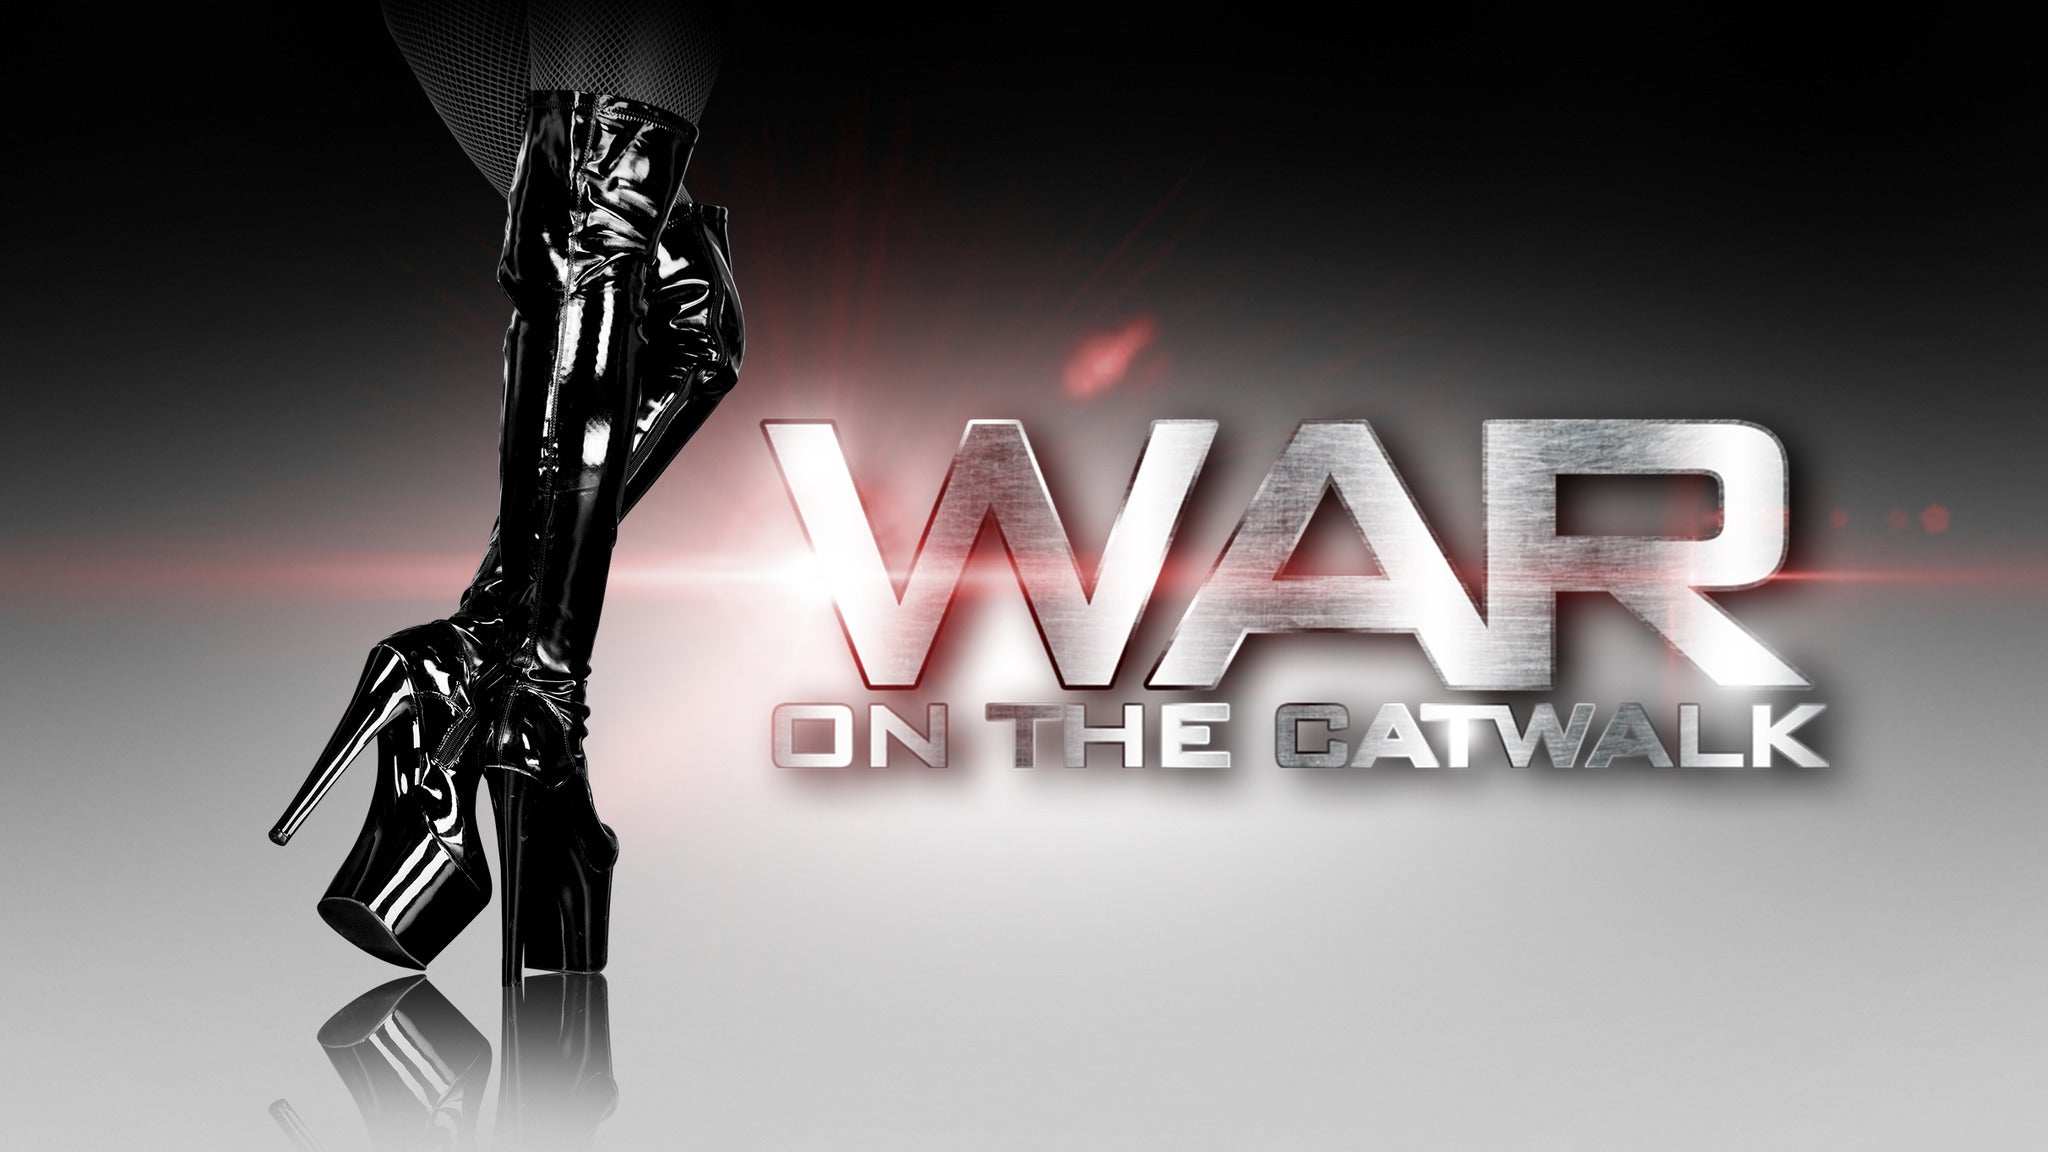 RuPaul's Drag Race Contestants LIVE! War On The Catwalk